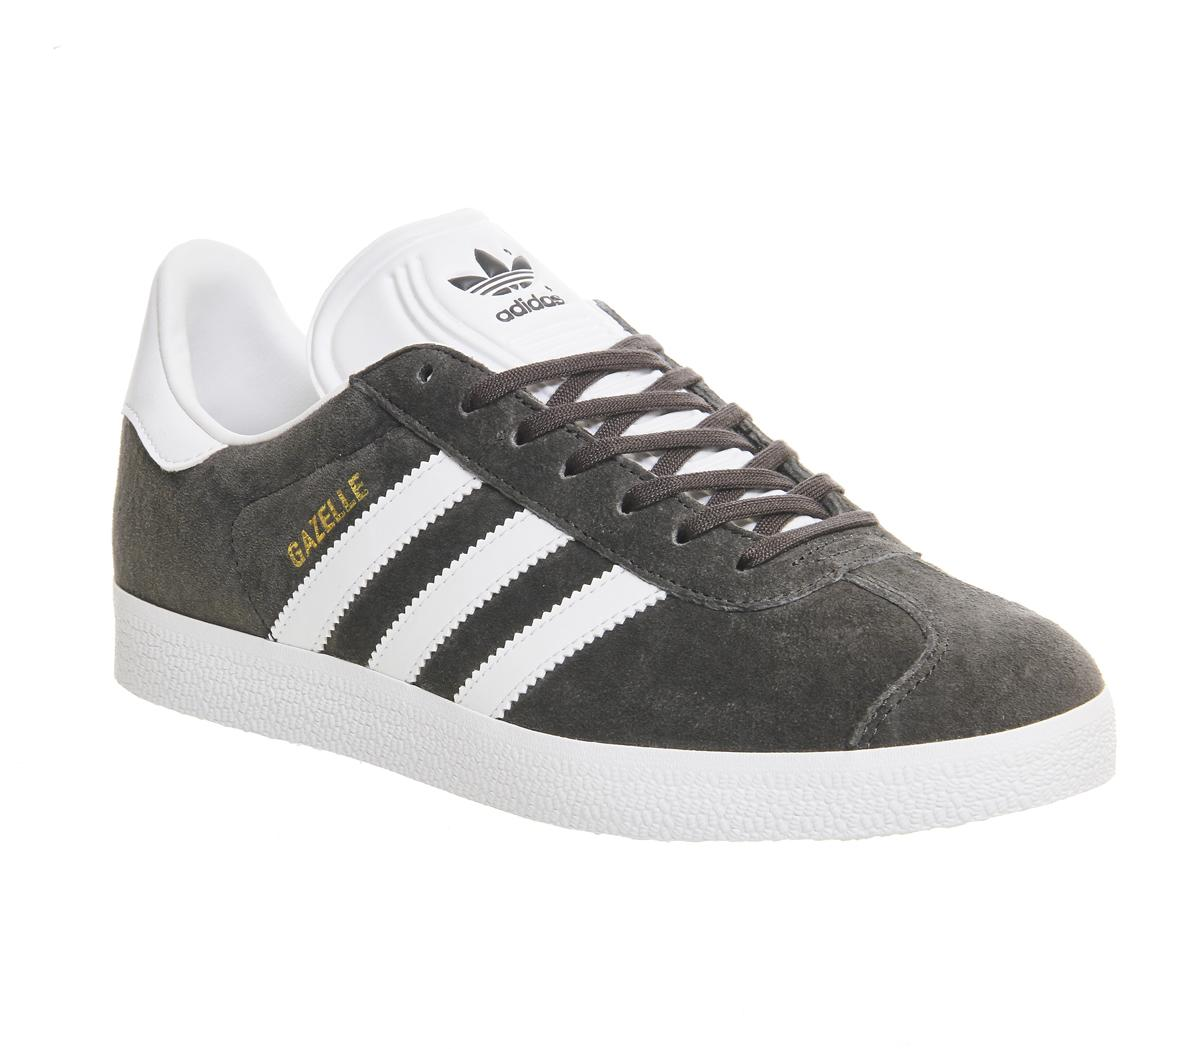 Marcha atrás frecuencia Extranjero  adidas Gazelle Dgh Solid Grey White Gold Met - His trainers